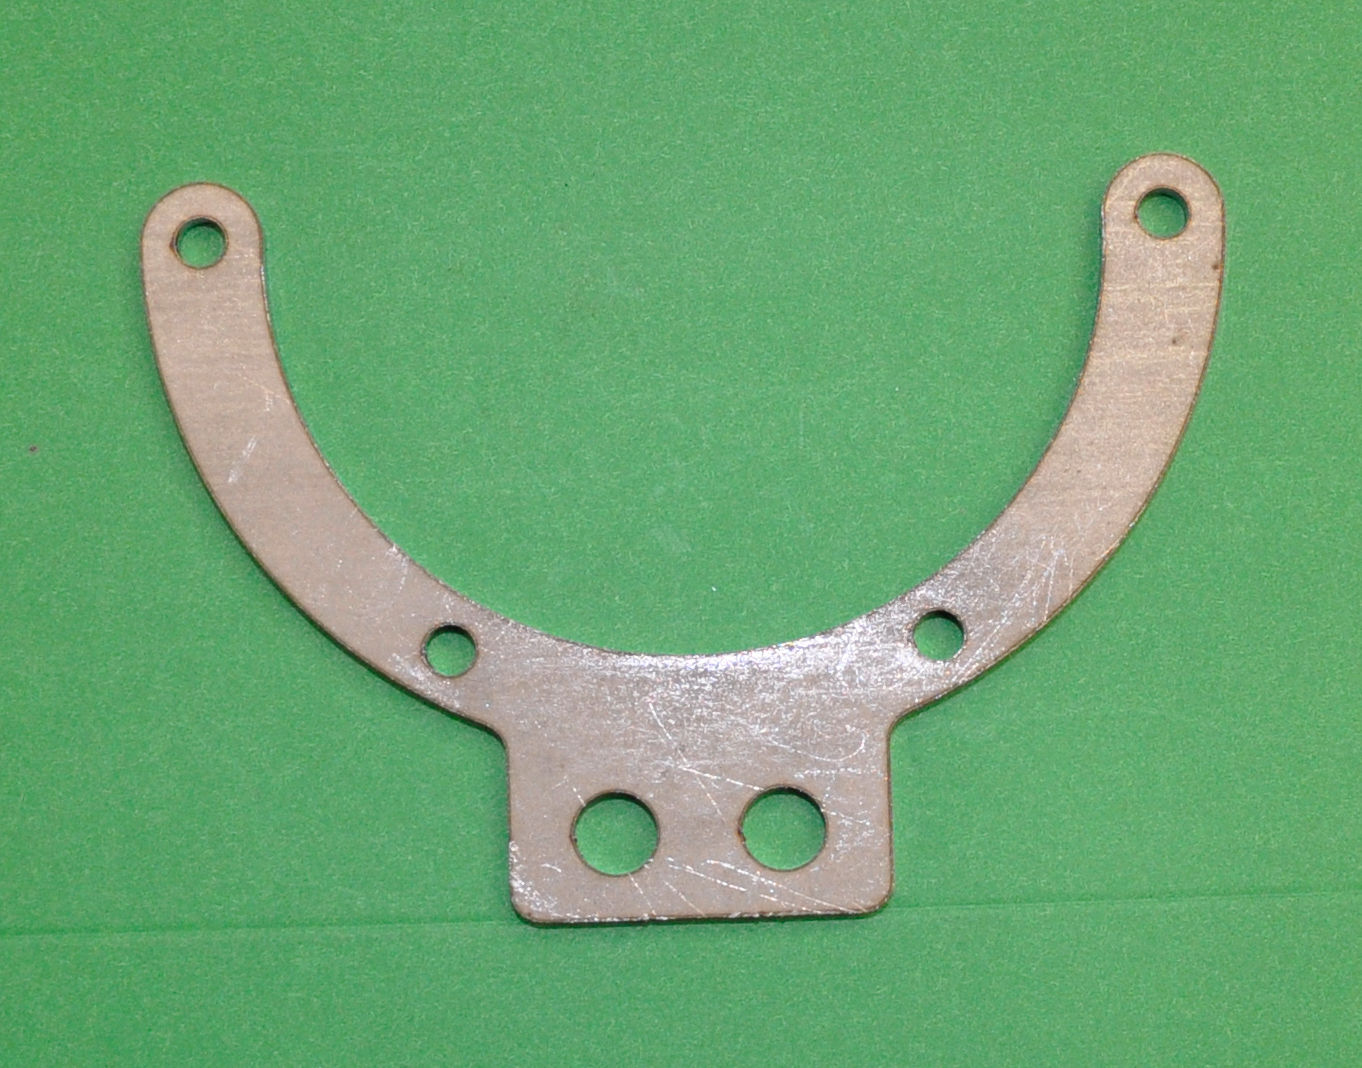 Triumph Bonneville T100 T120 Long Arm Horn Mounting Bracket Post. This is the long arm horn bracket for the post 1969 T100T120 Bonnevilles to carry the Lucas Clear hooter horn.